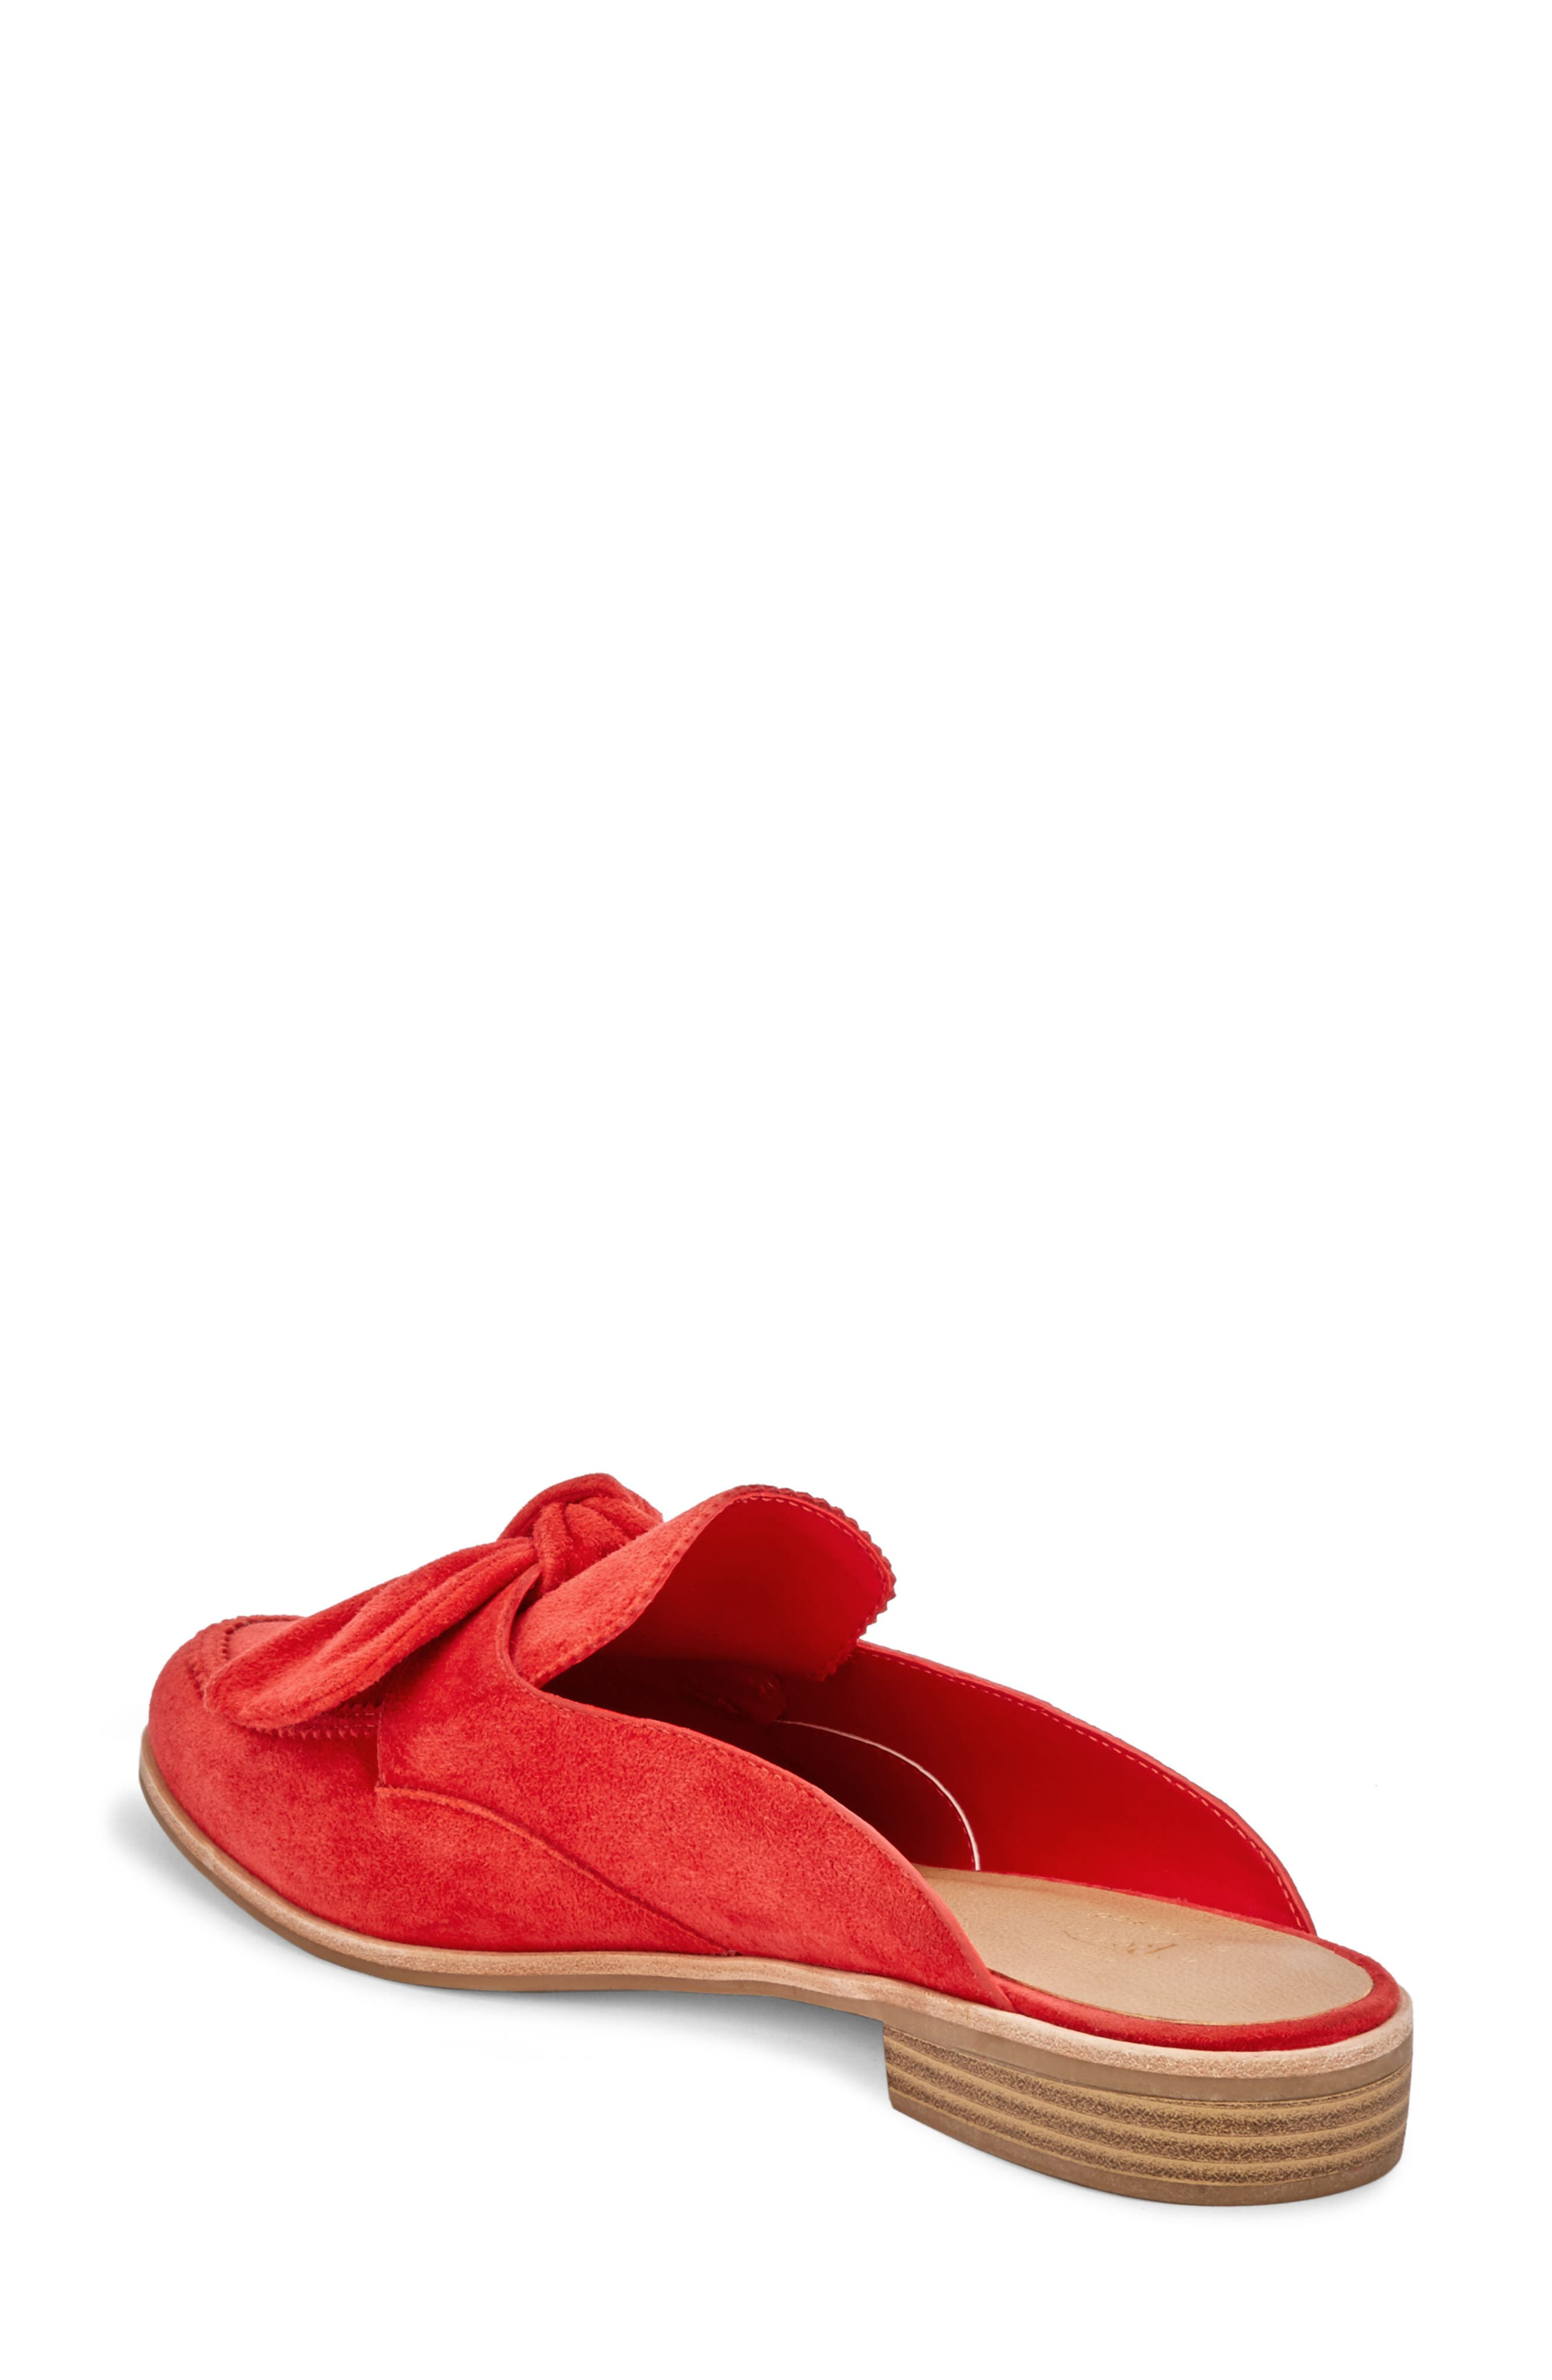 Ebbie Bow Mule,                             Alternate thumbnail 2, color,                             Red Suede